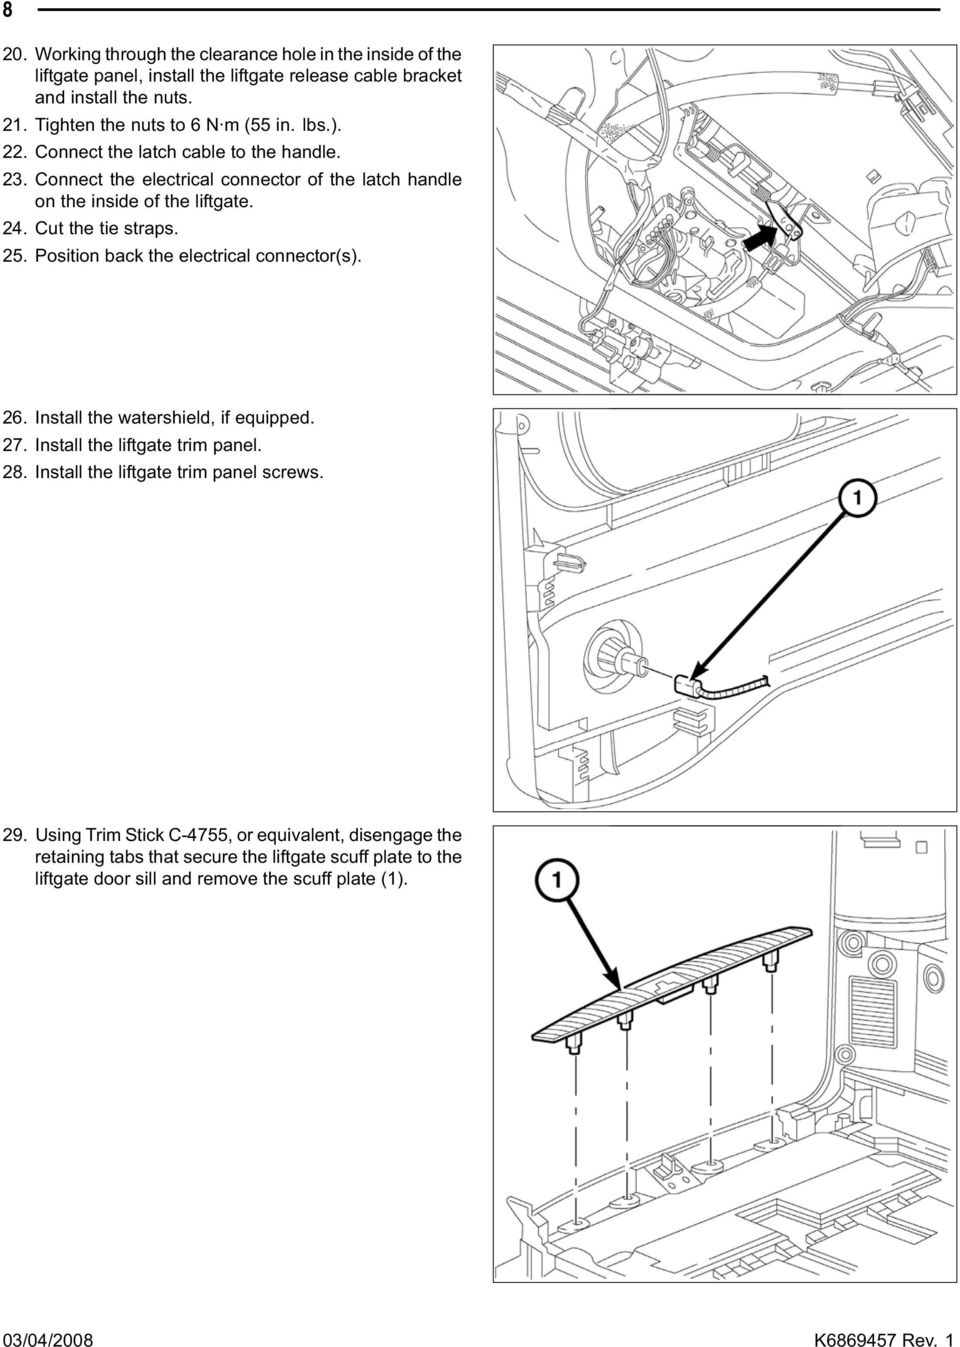 Backup Camera Jeep Commander Grand Cherokee Pdf 2006 Lift Gate Wiring Diagram Connect The Electrical Connector Of Latch Handle On Inside Liftgate 24